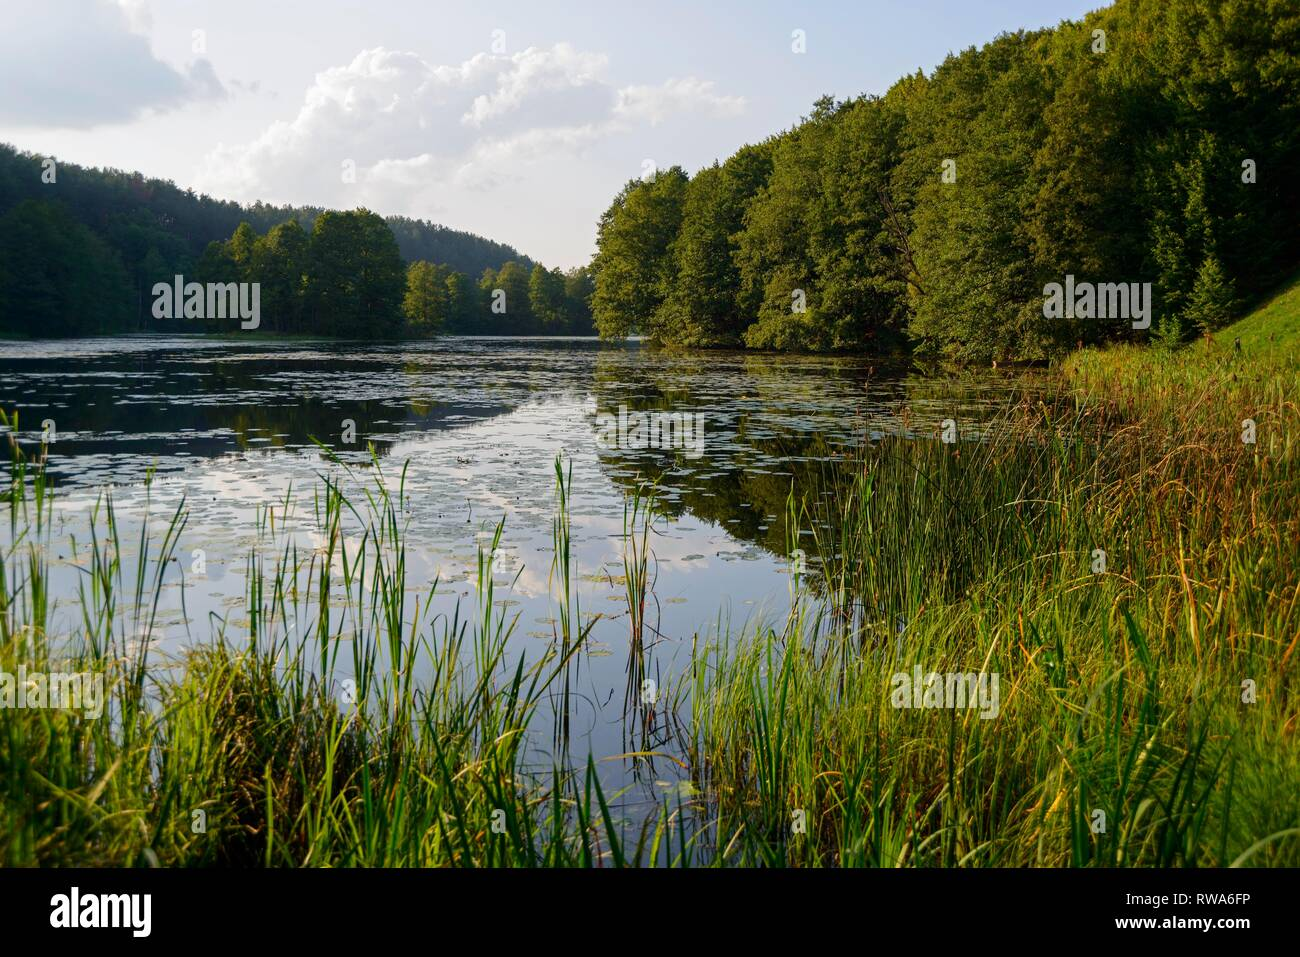 Lake near Rutka, Suwalki Landscape Park, Podlaskie, Poland Stock Photo